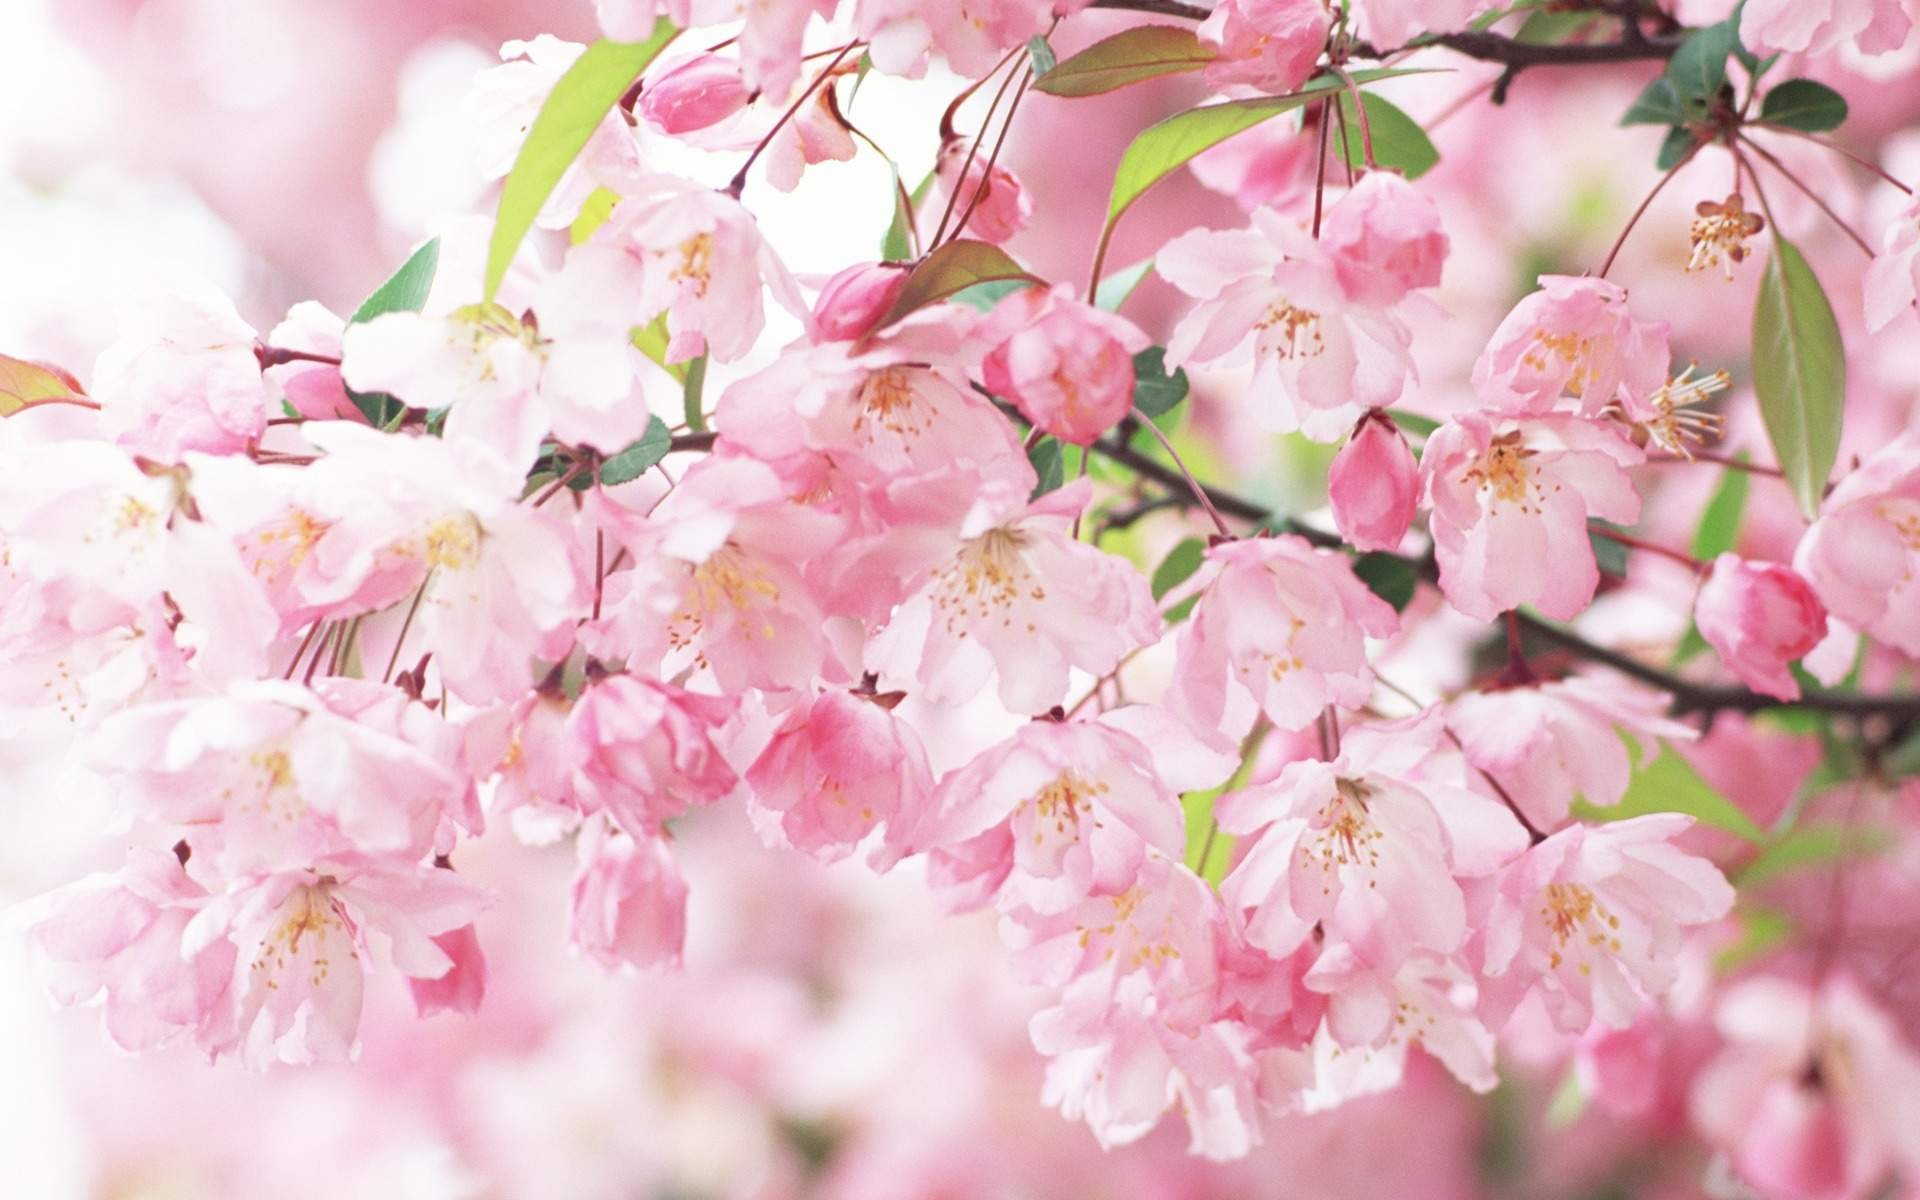 Flower Background Tumblr Download Free Stunning Wallpapers For